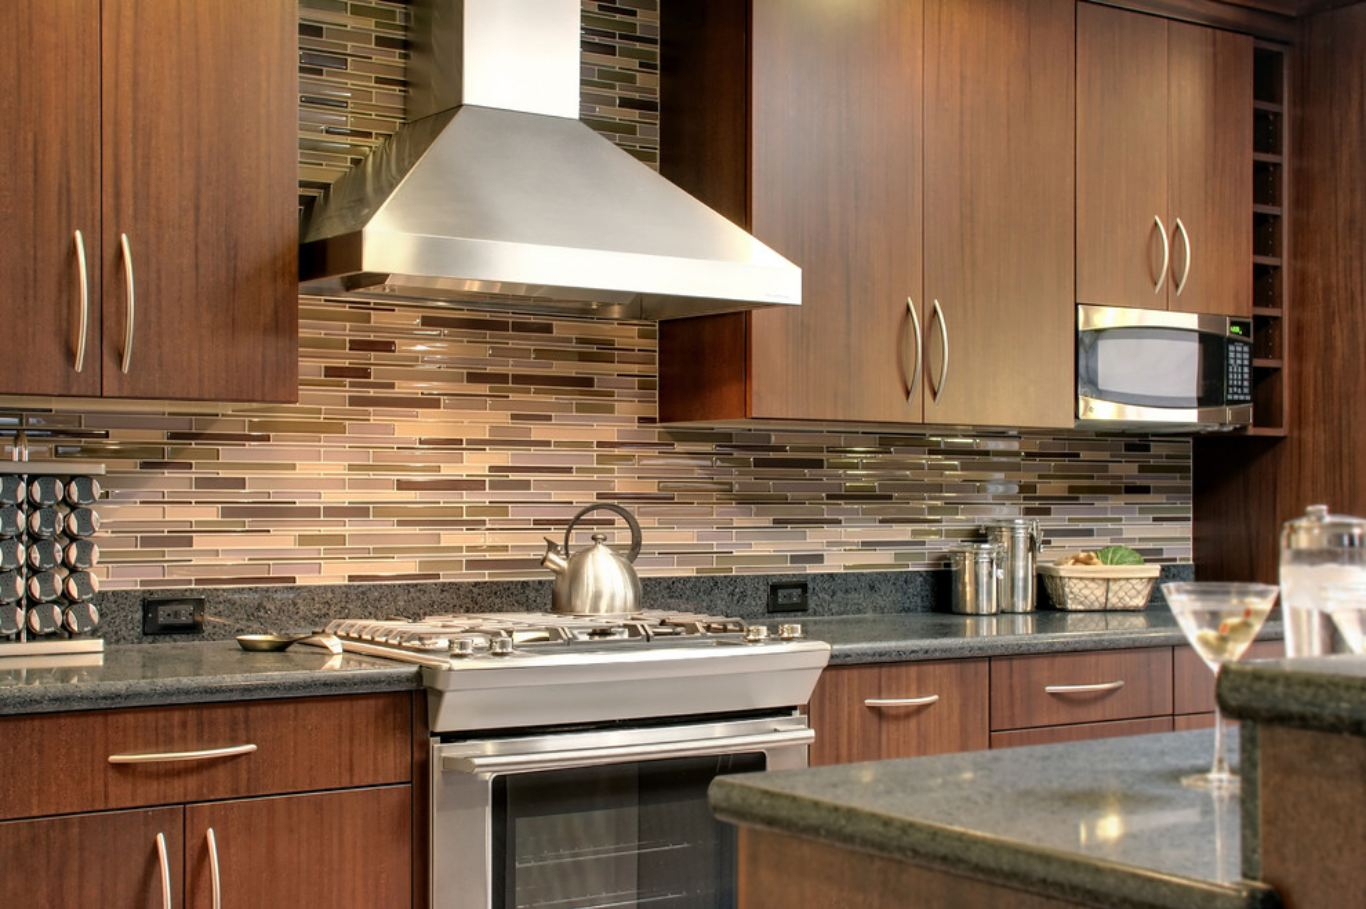 Modern Brown Glass Tile Designs for Backsplash